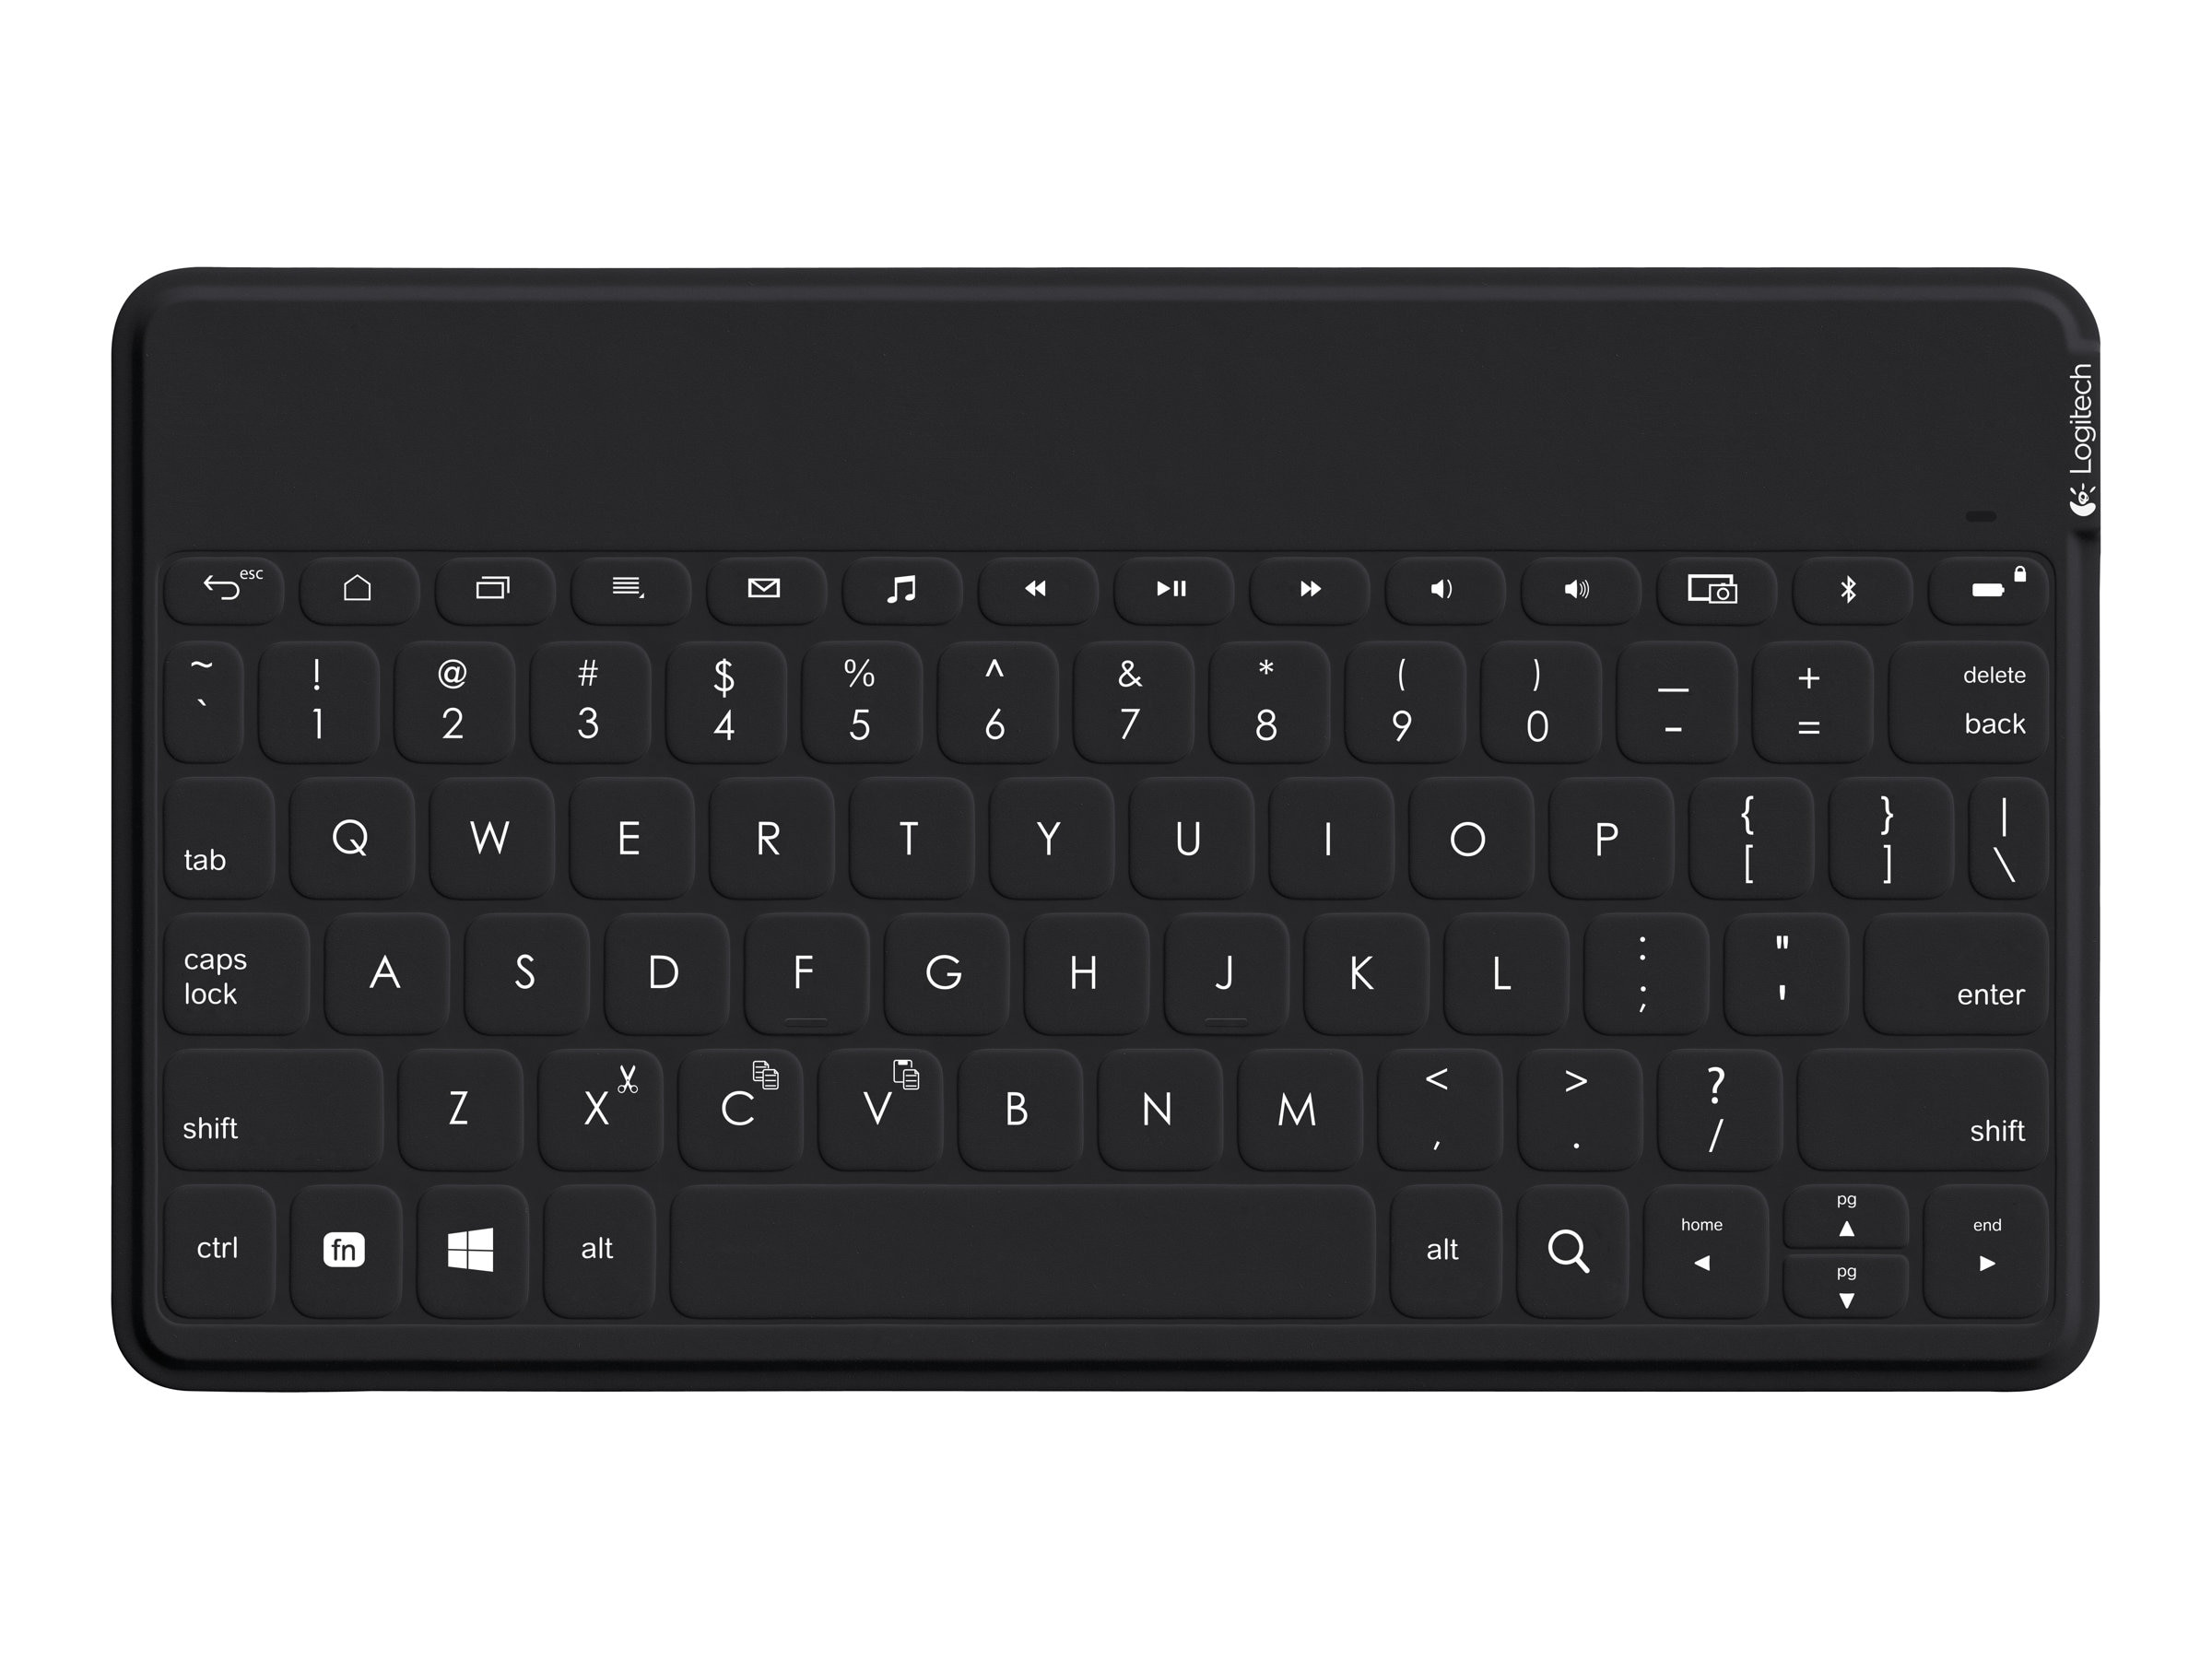 Logitech Keys-To-Go Portable Keyboard for iPad, iPhone, Apple TV, Black, 920-006701